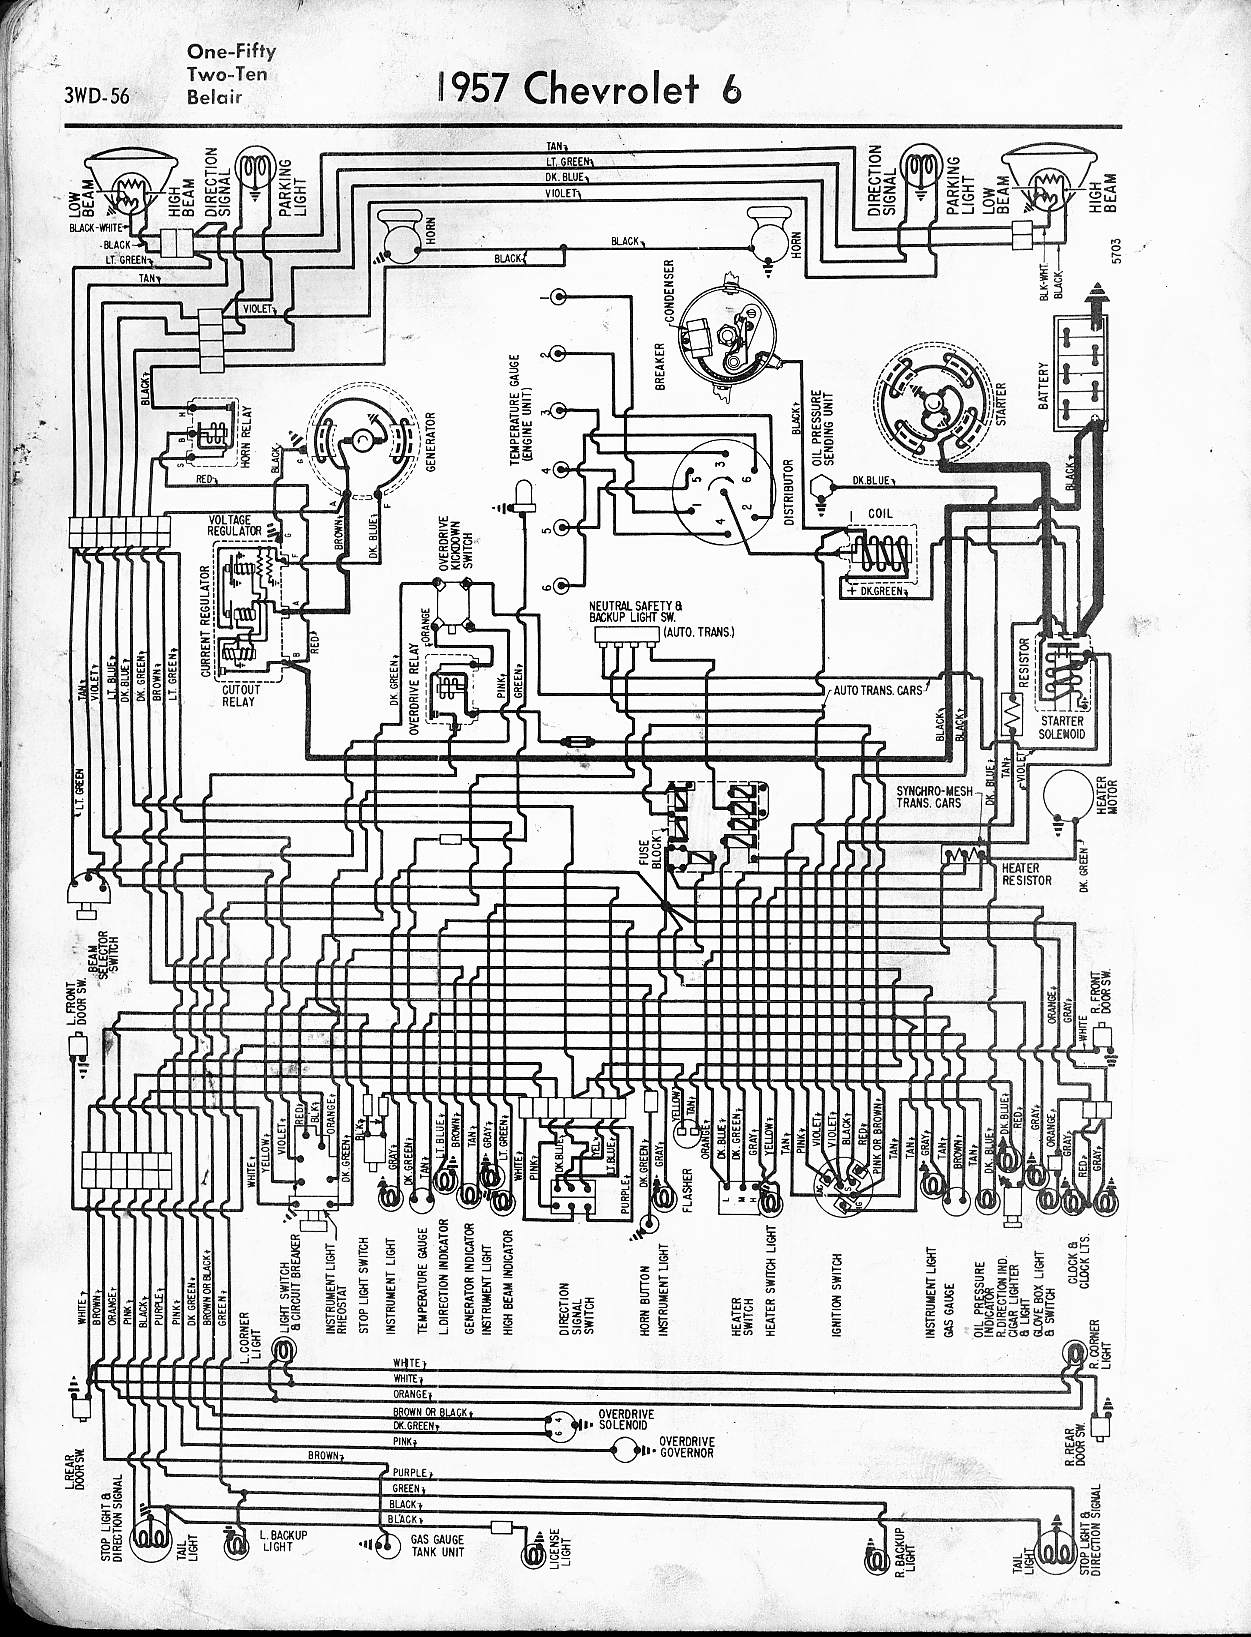 MWireChev57_3WD 056 57 65 chevy wiring diagrams 57 chevy truck wiring harness at pacquiaovsvargaslive.co